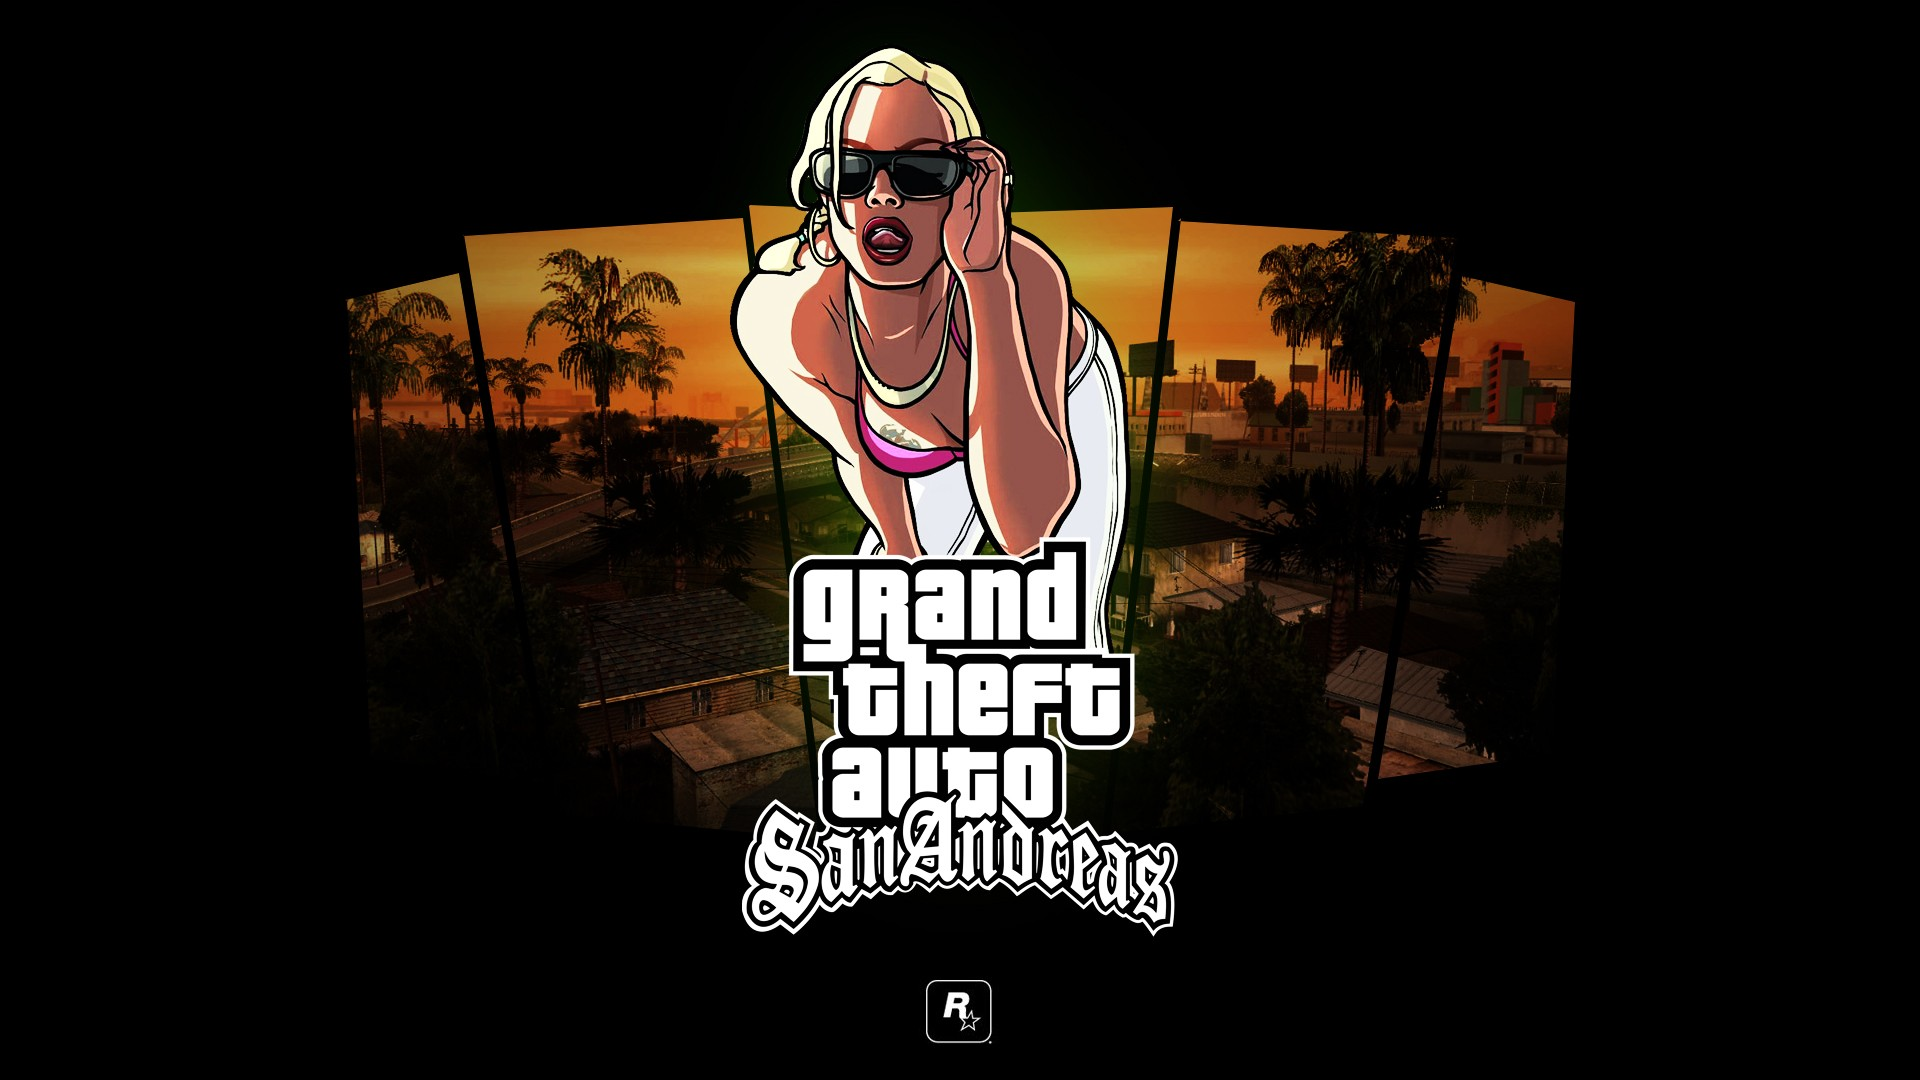 gta san andreas hd games 4k wallpapers images backgrounds